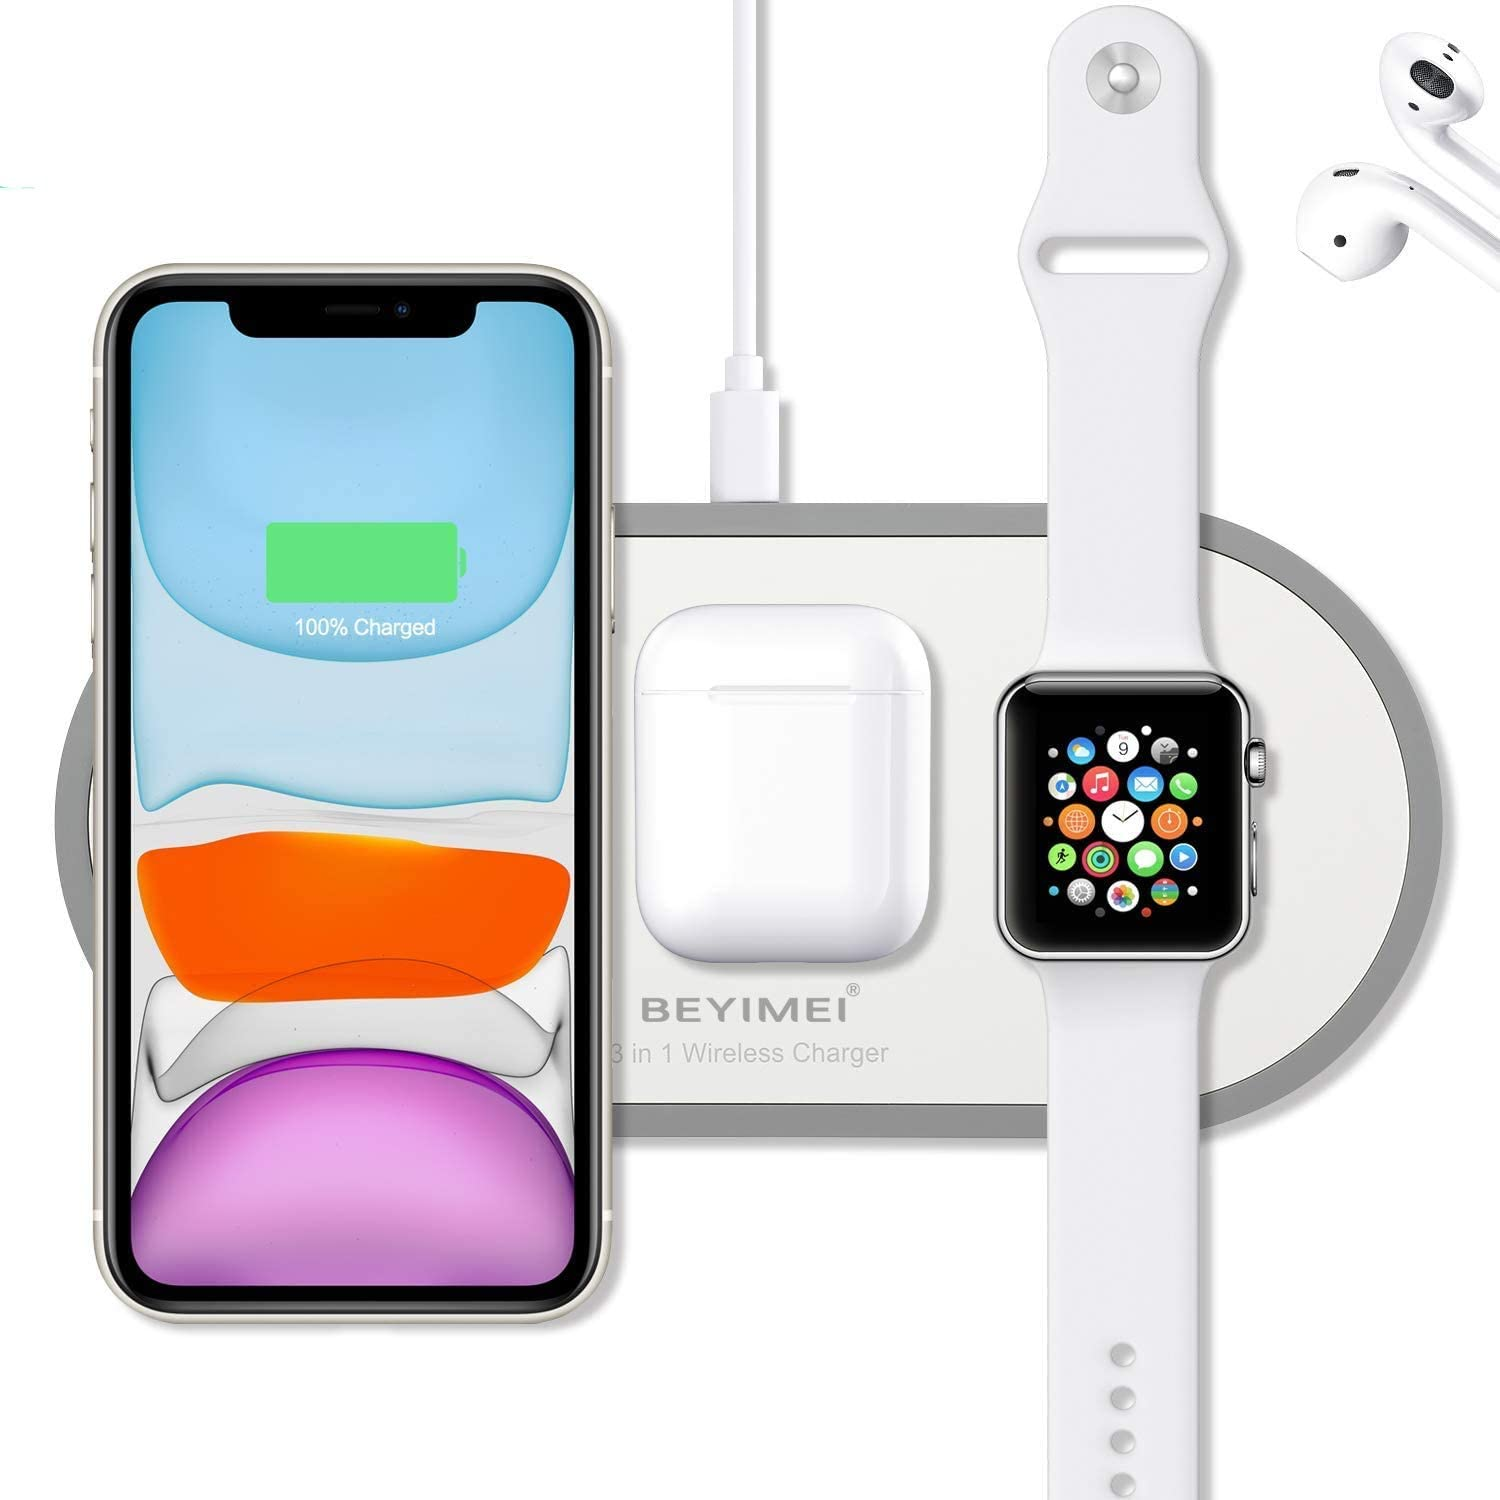 BEYIMEI Wireless Charger, 3 in 1 Qi-Certified Fast Wireless Charging Pad for Apple Watch Series 5/4/3/2/1,Airpods 2.0, Compatible with iPhone 11 Pro Max/XS Max/XR/XS/X / 8/8 Plus